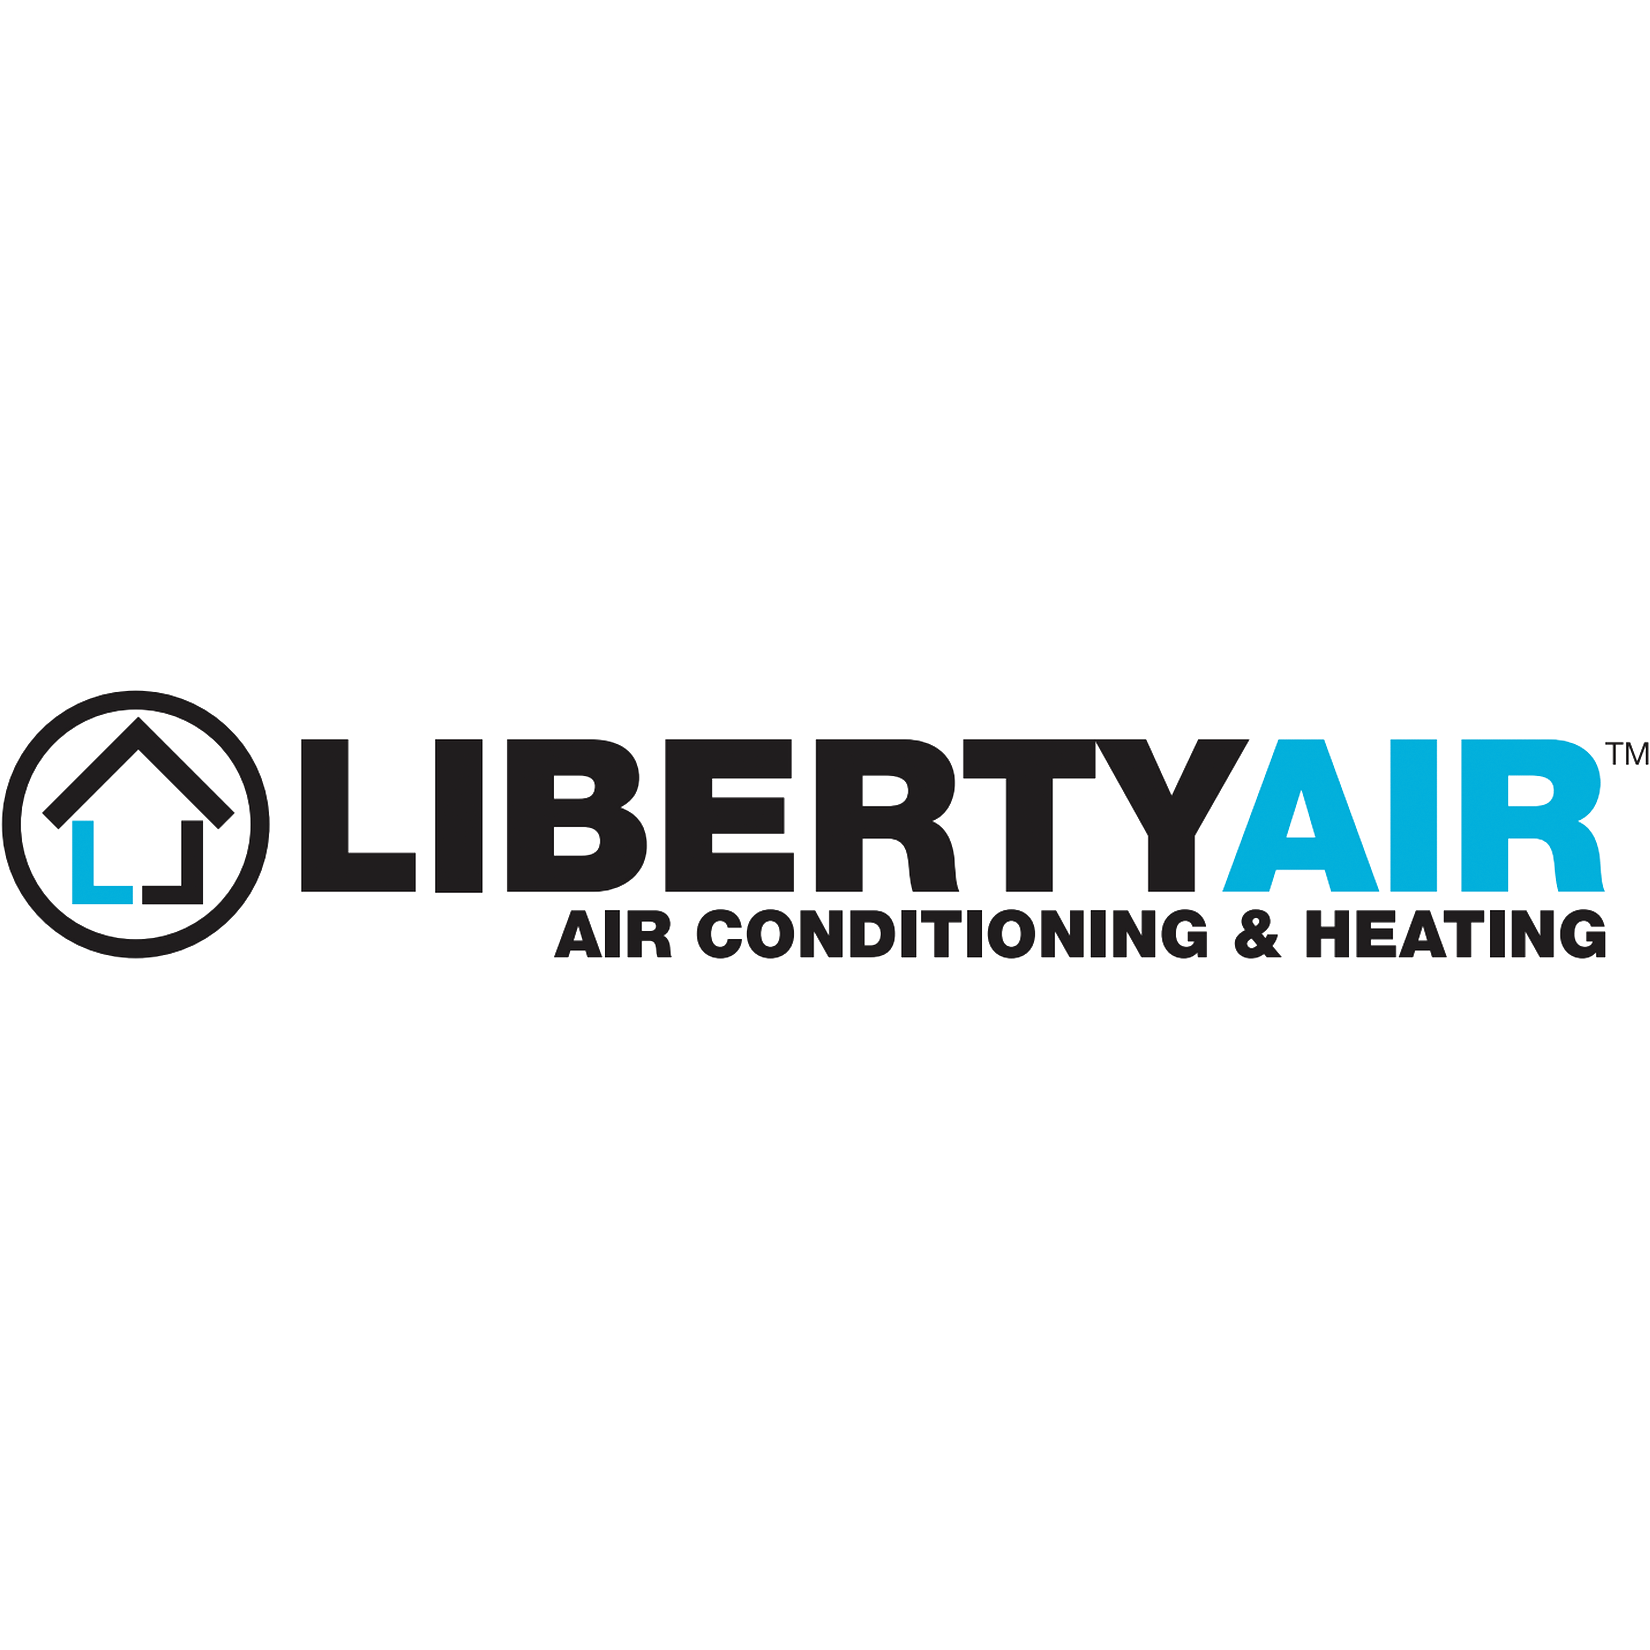 LIBERTYAIR Air Conditioning & Heating